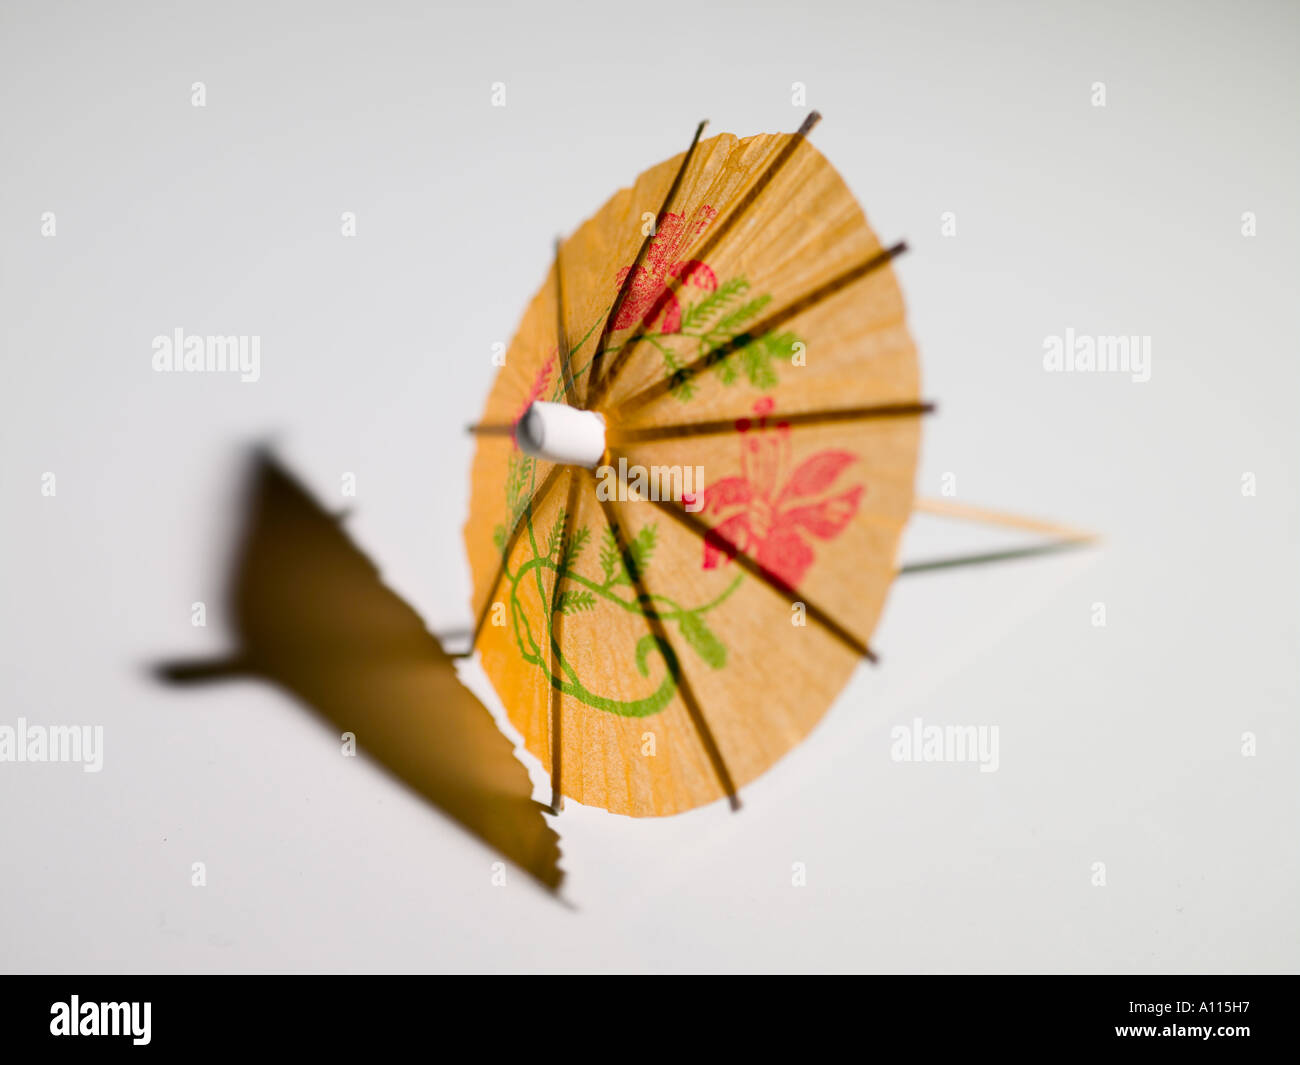 umbrella, paper, toothpicks, small, wooden, to drink, landscaping, close up, white background, yellow, green, red, drawings - Stock Image